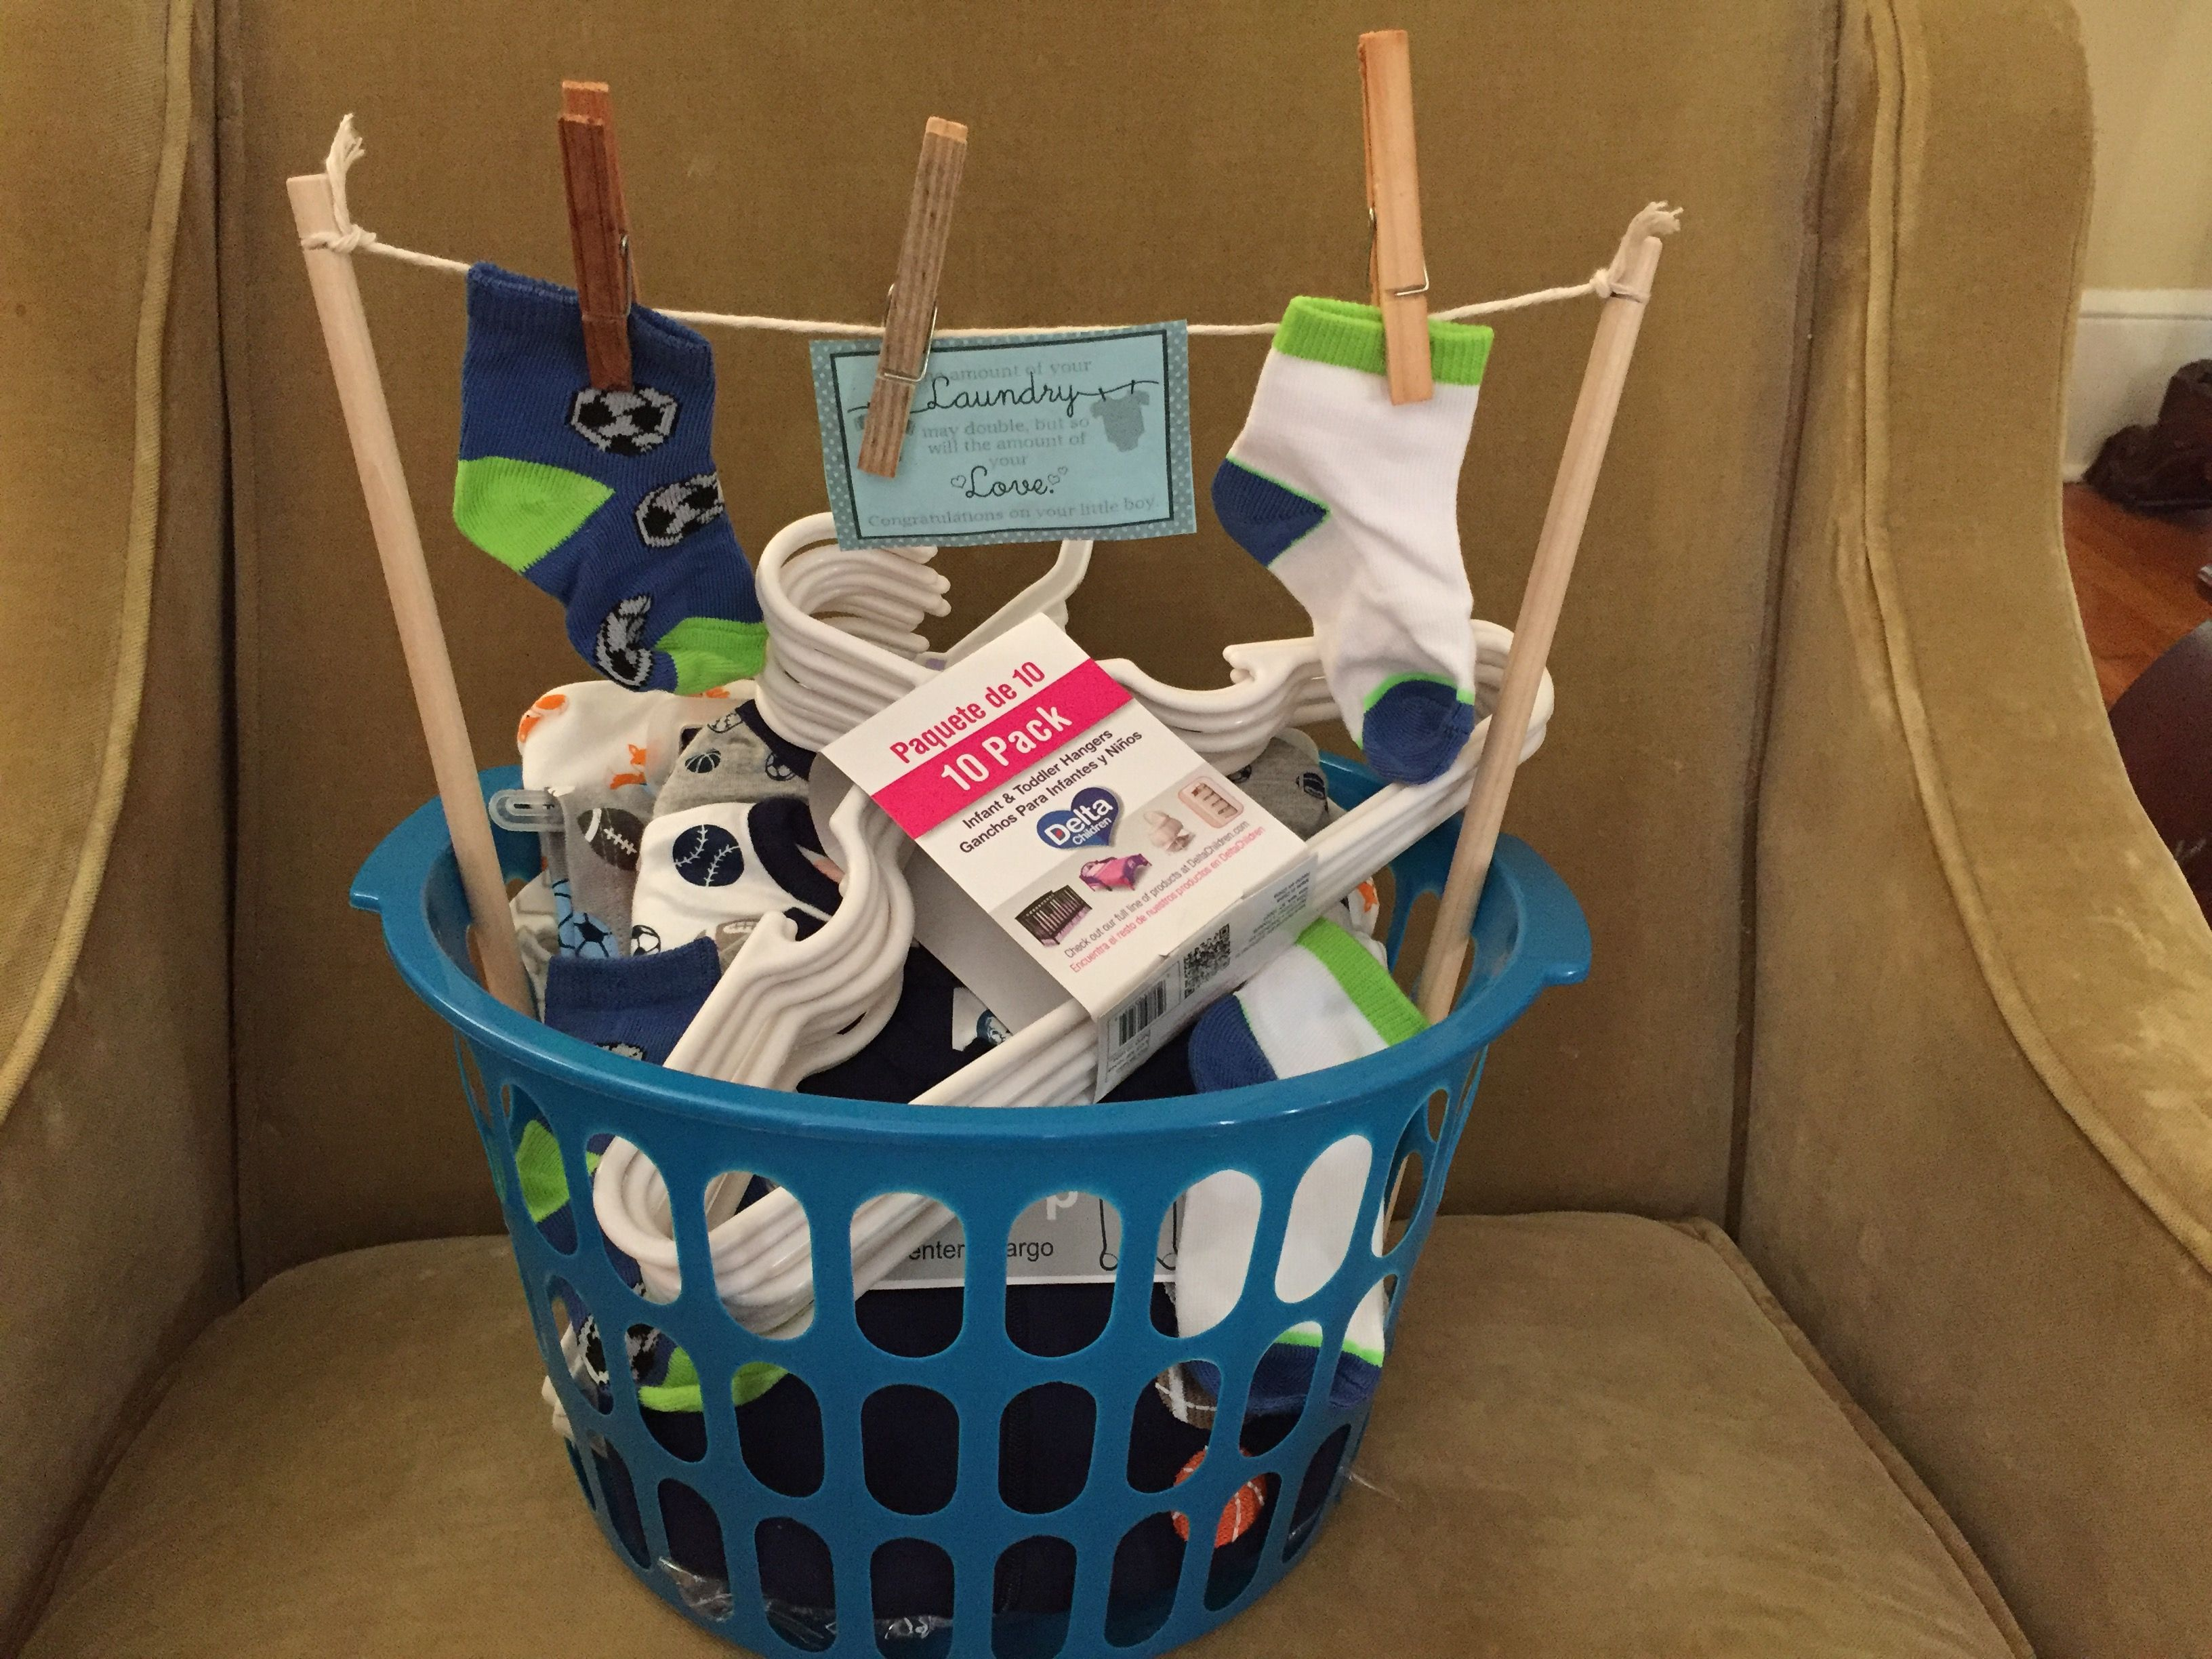 Baby Laundry Bin Baby Shower 39laundry 39 Gift Basket I Got A Small Laundry